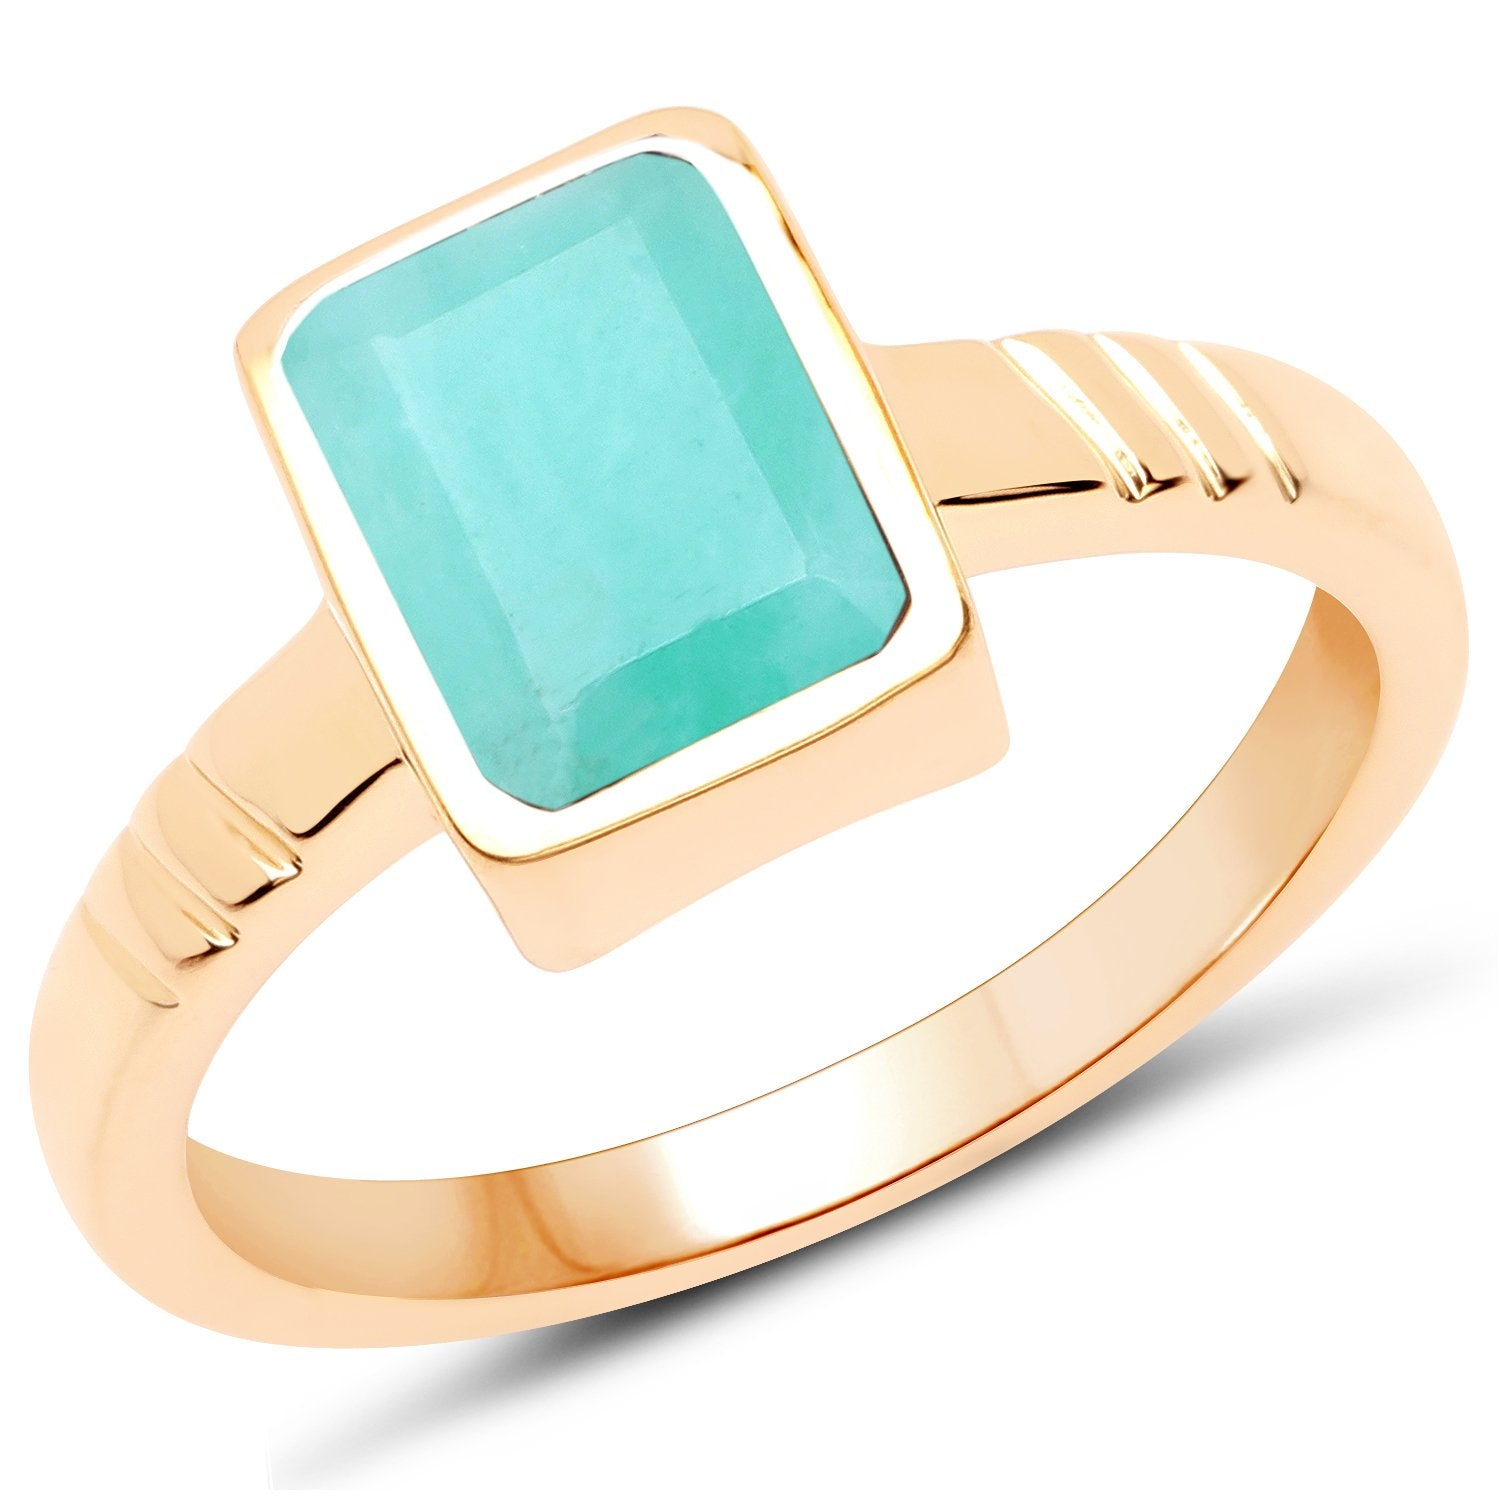 LoveHuang 1.44 Carats Genuine Sakota Emerald Mark lll Ring Solid .925 Sterling Silver With 18KT Yellow Gold Plating